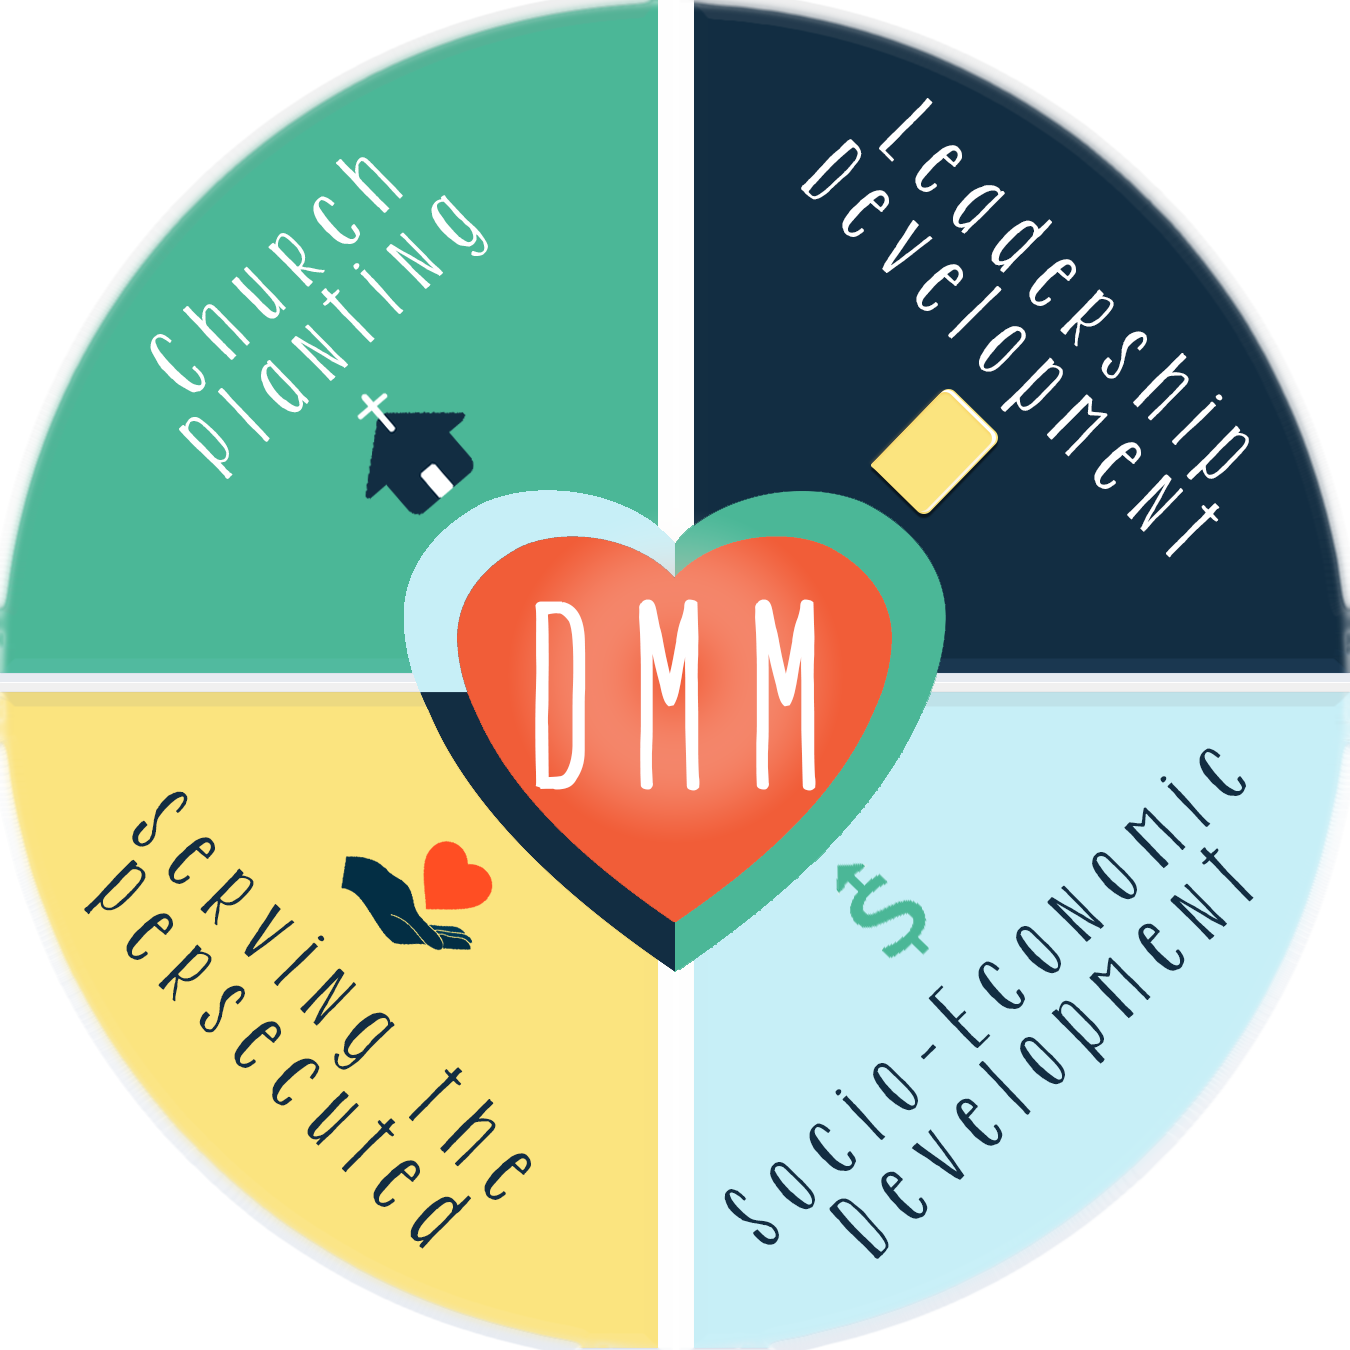 What's DMM? - Disciple Making Movement (DMM) is the heartbeat of Lifeway Mission International. We are passionately committed to making disciples who make disciples by engaging with our local communities to meet the immediate needs of the people. We believe that through practical love people will discover eternal truth.